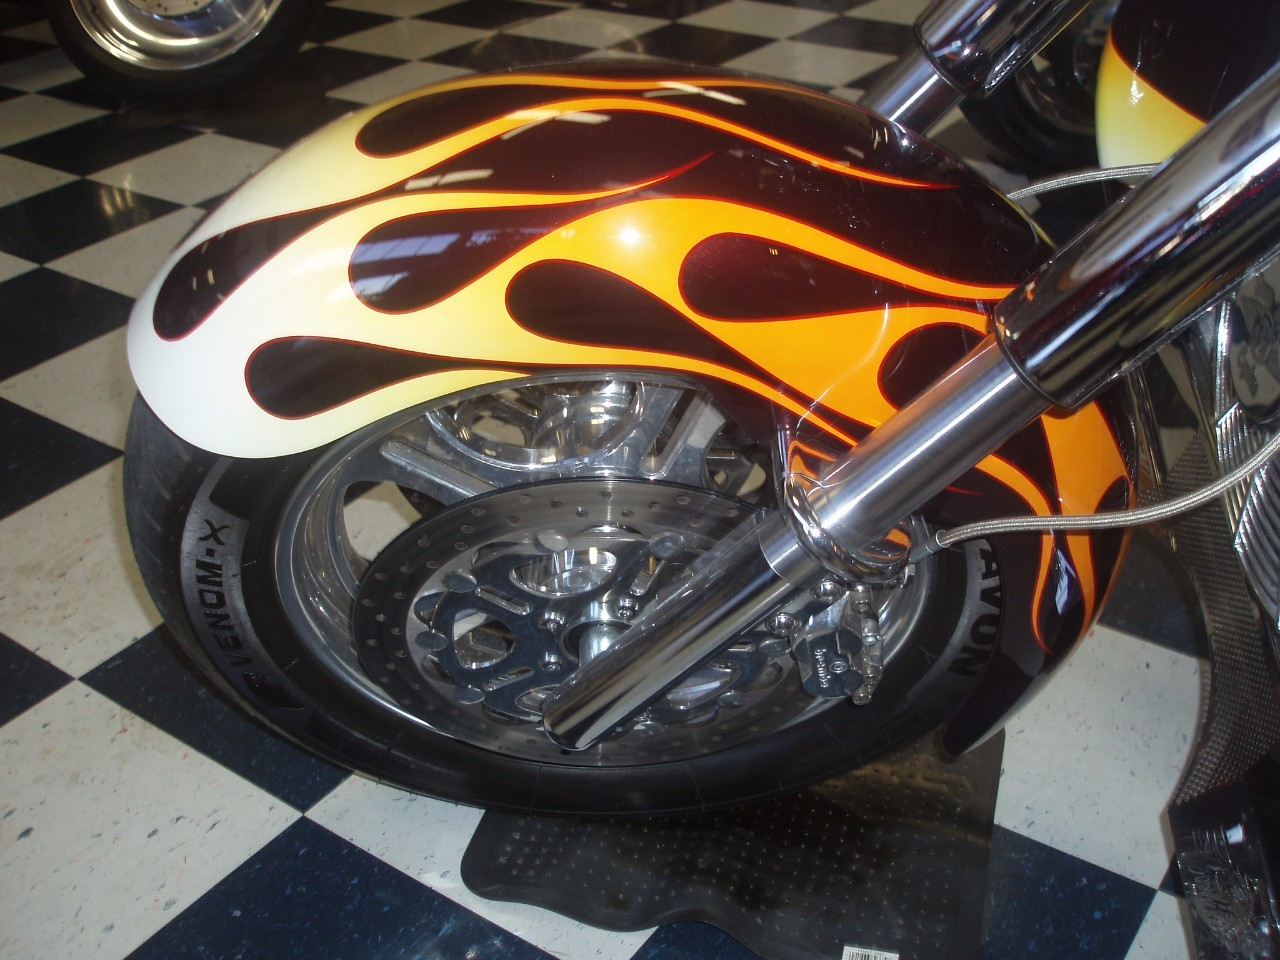 See more photos for this Boss Hoss LS3 Supersport, 2010 motorcycle listing